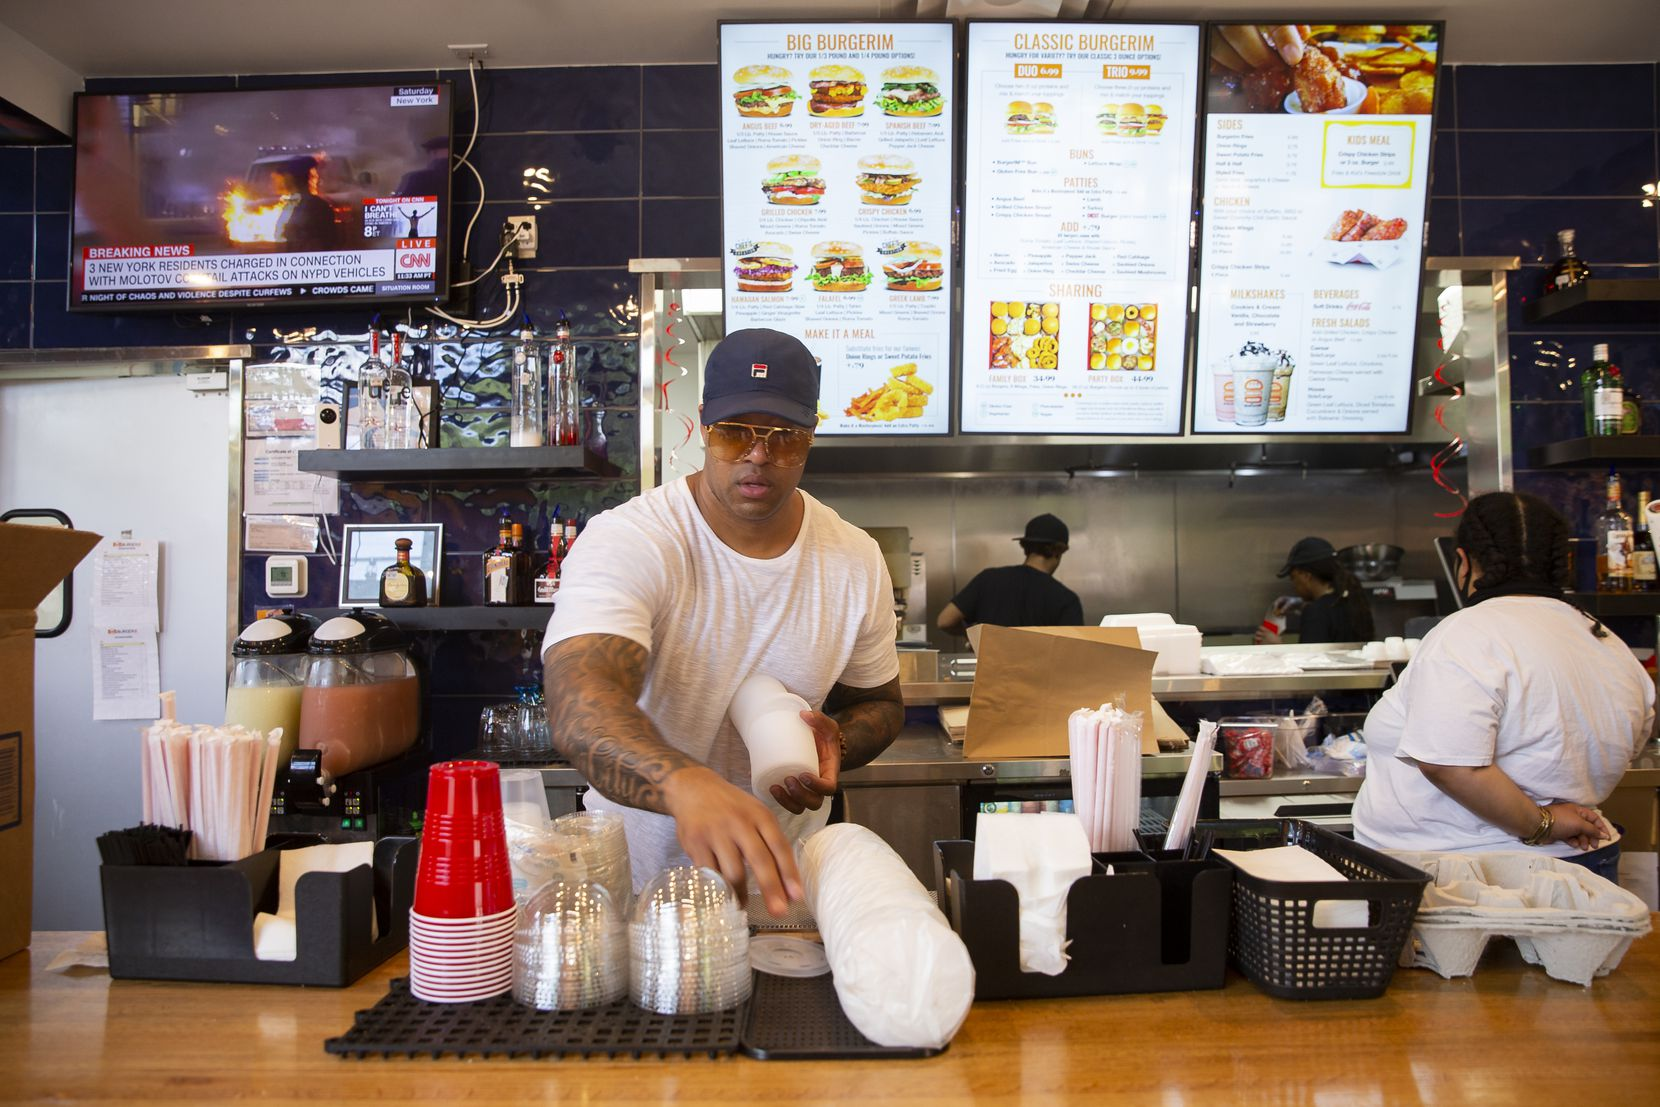 Owner Wes Williams restocks lids at BurgerIM on Sunday, May 31, 2020 in Dallas. Many in the community have shown up to support the West End restaurant after it was damaged by protesters Friday night. (Juan Figueroa/ The Dallas Morning News)